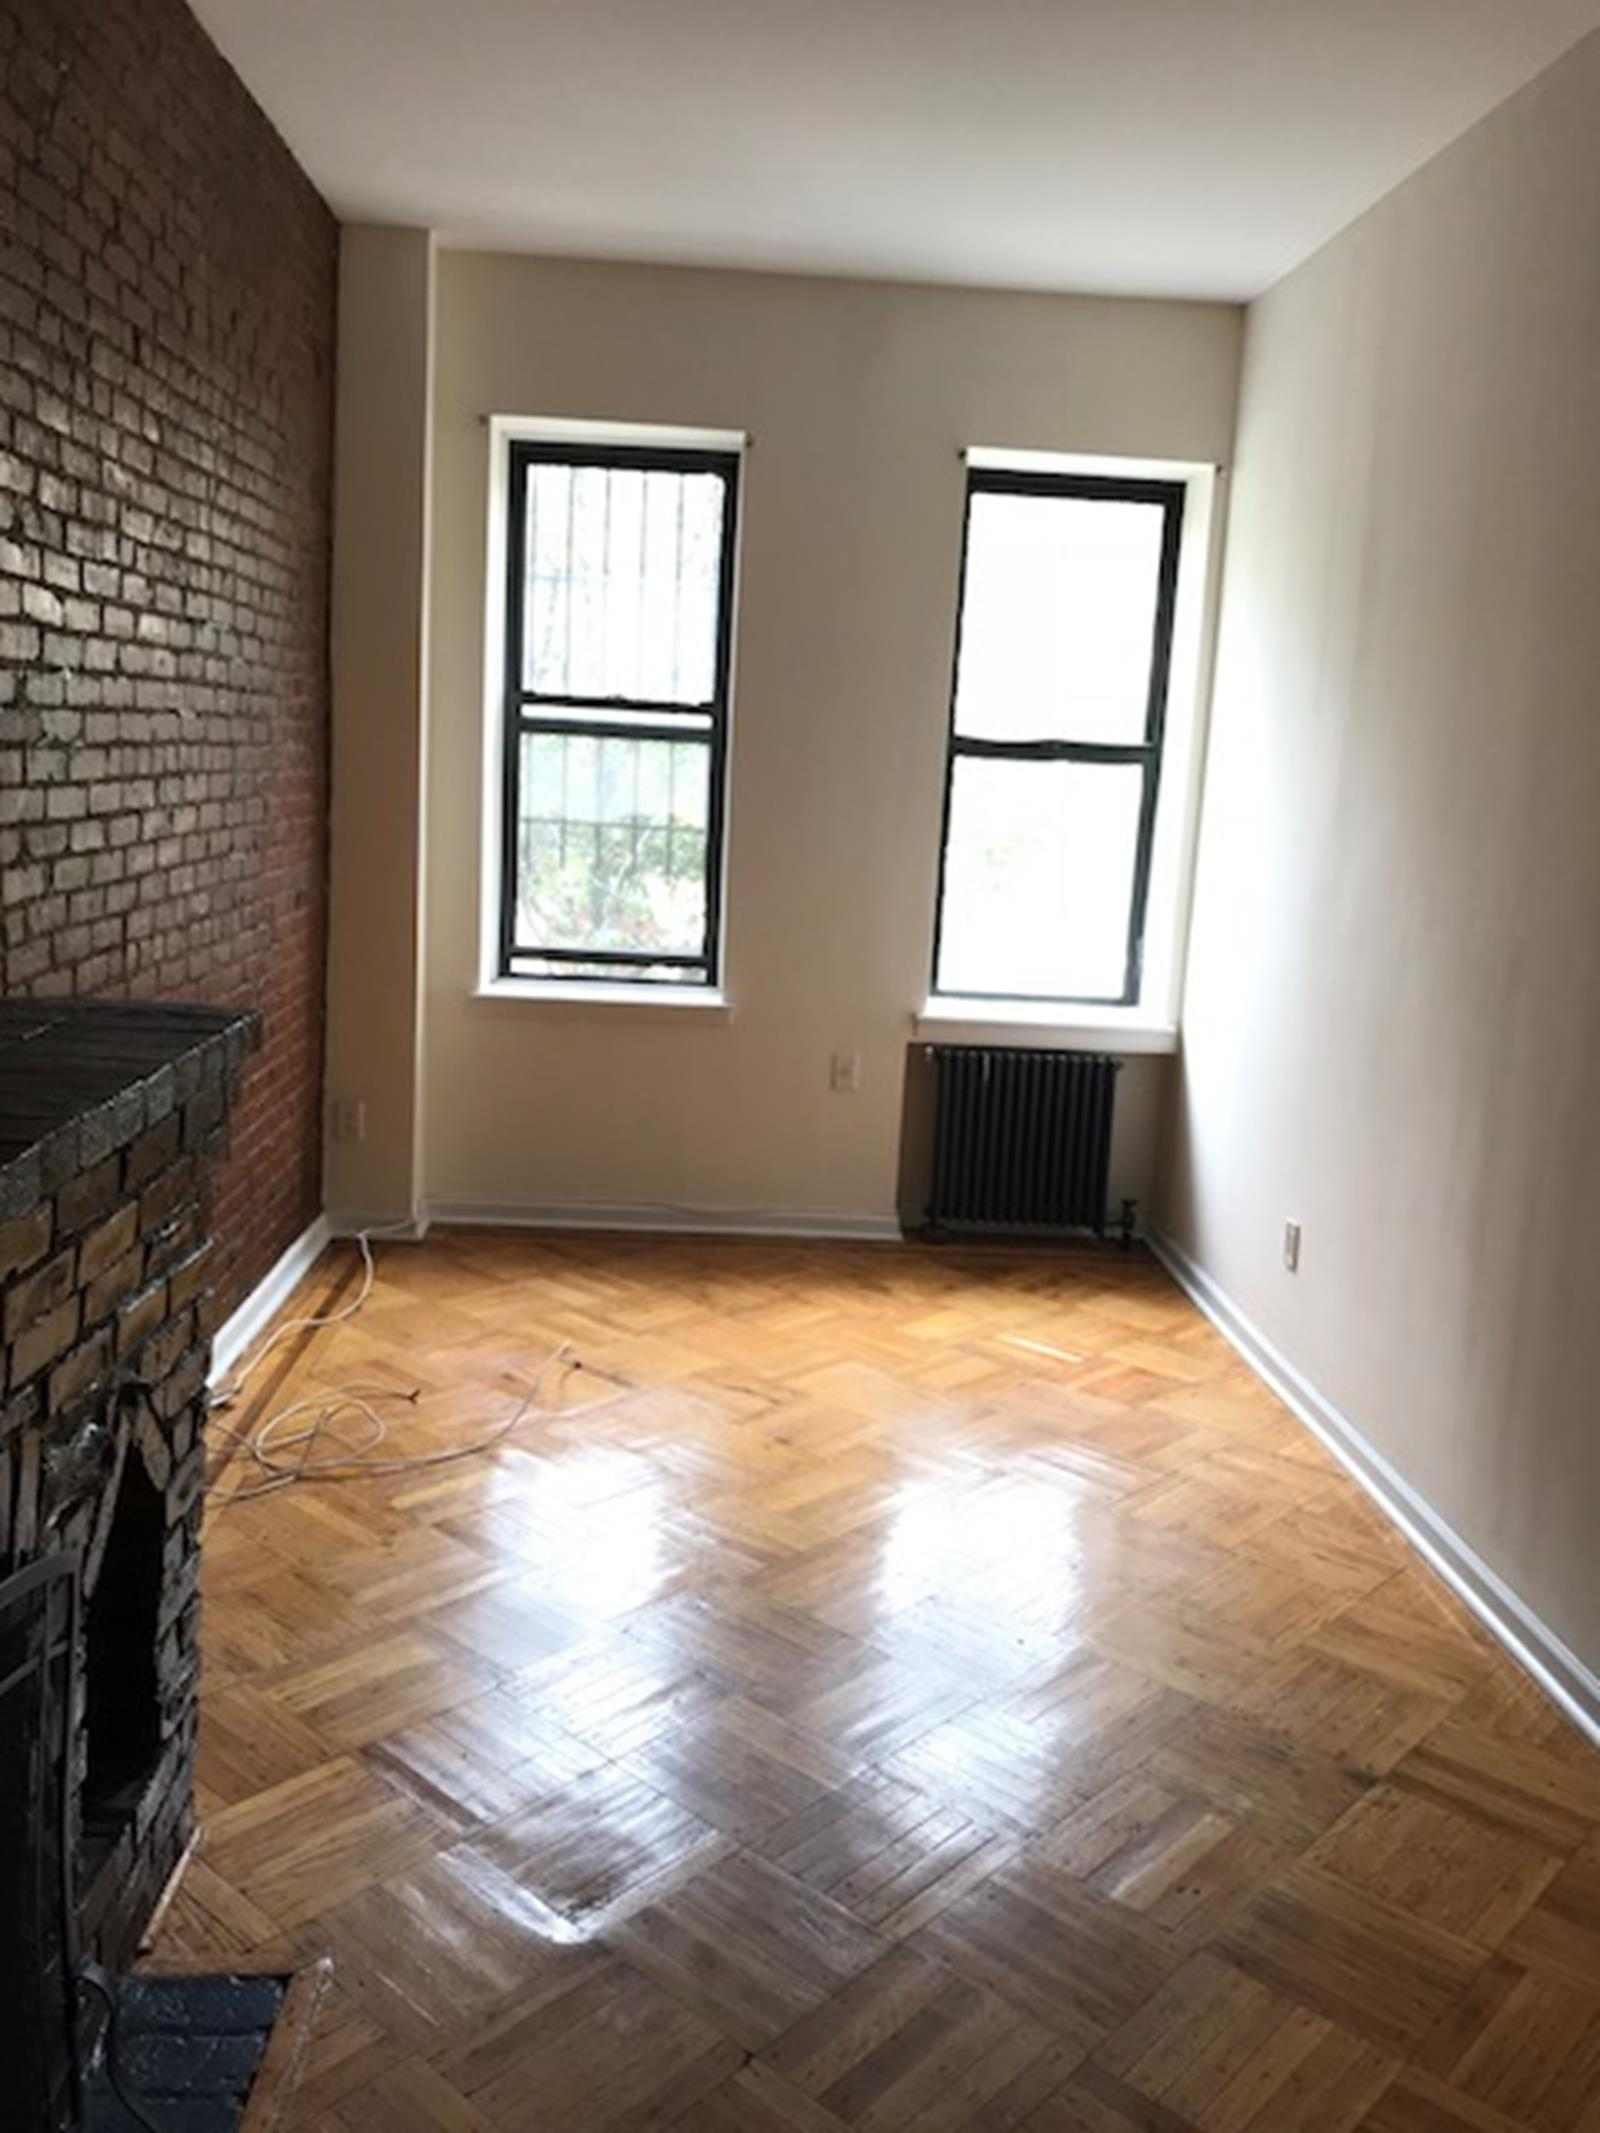 52 West 91st Street Upper West Side New York NY 10024